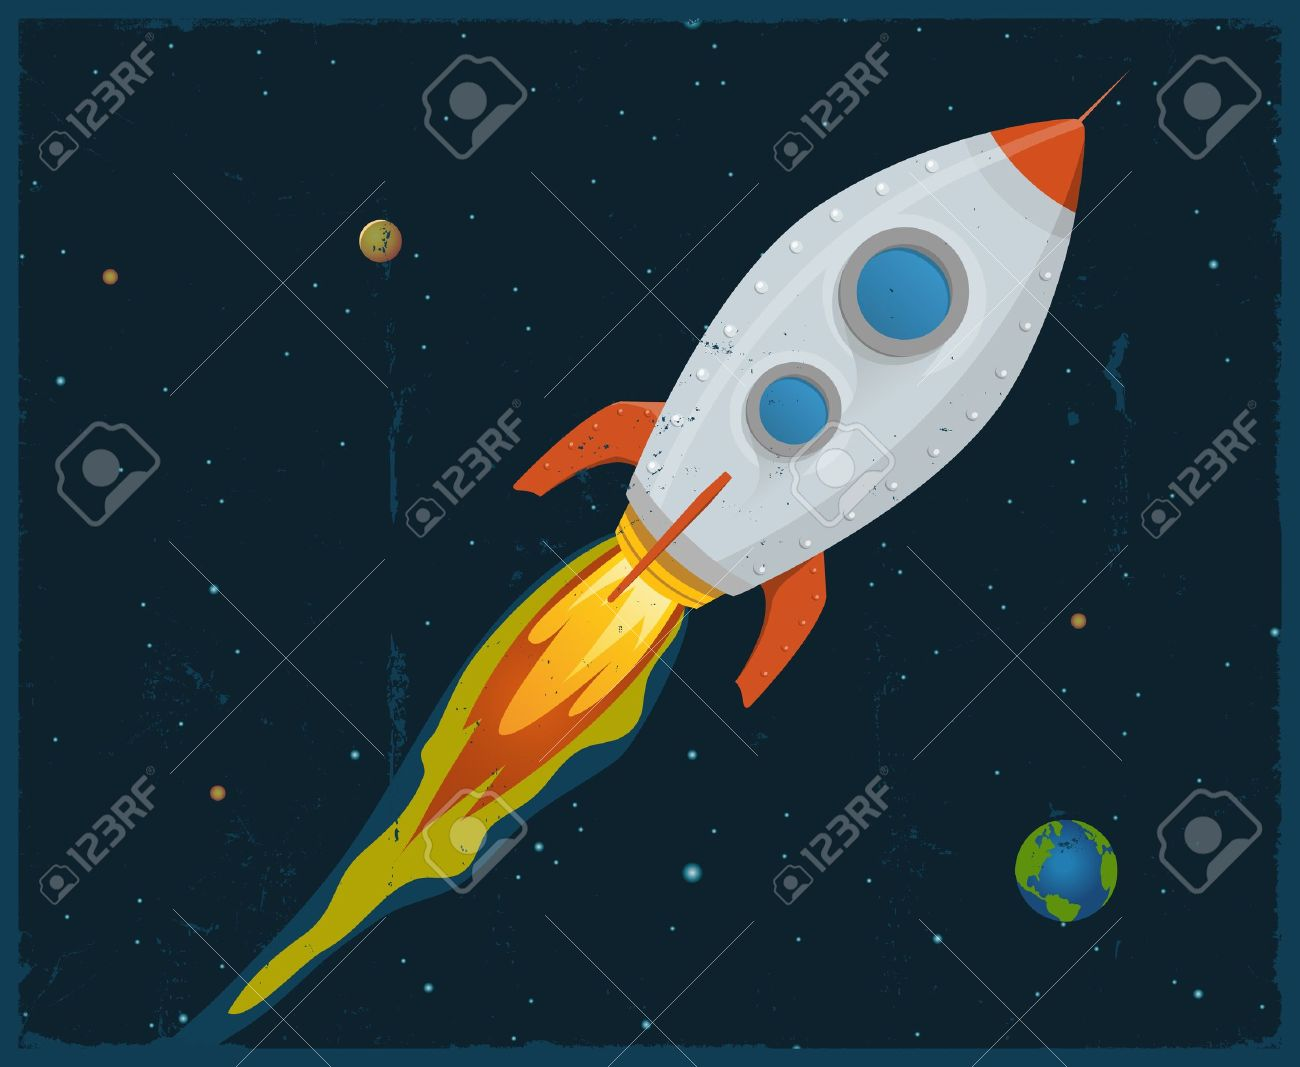 Illustration of a rocket ship flying through outer space Stock Vector - 11248637